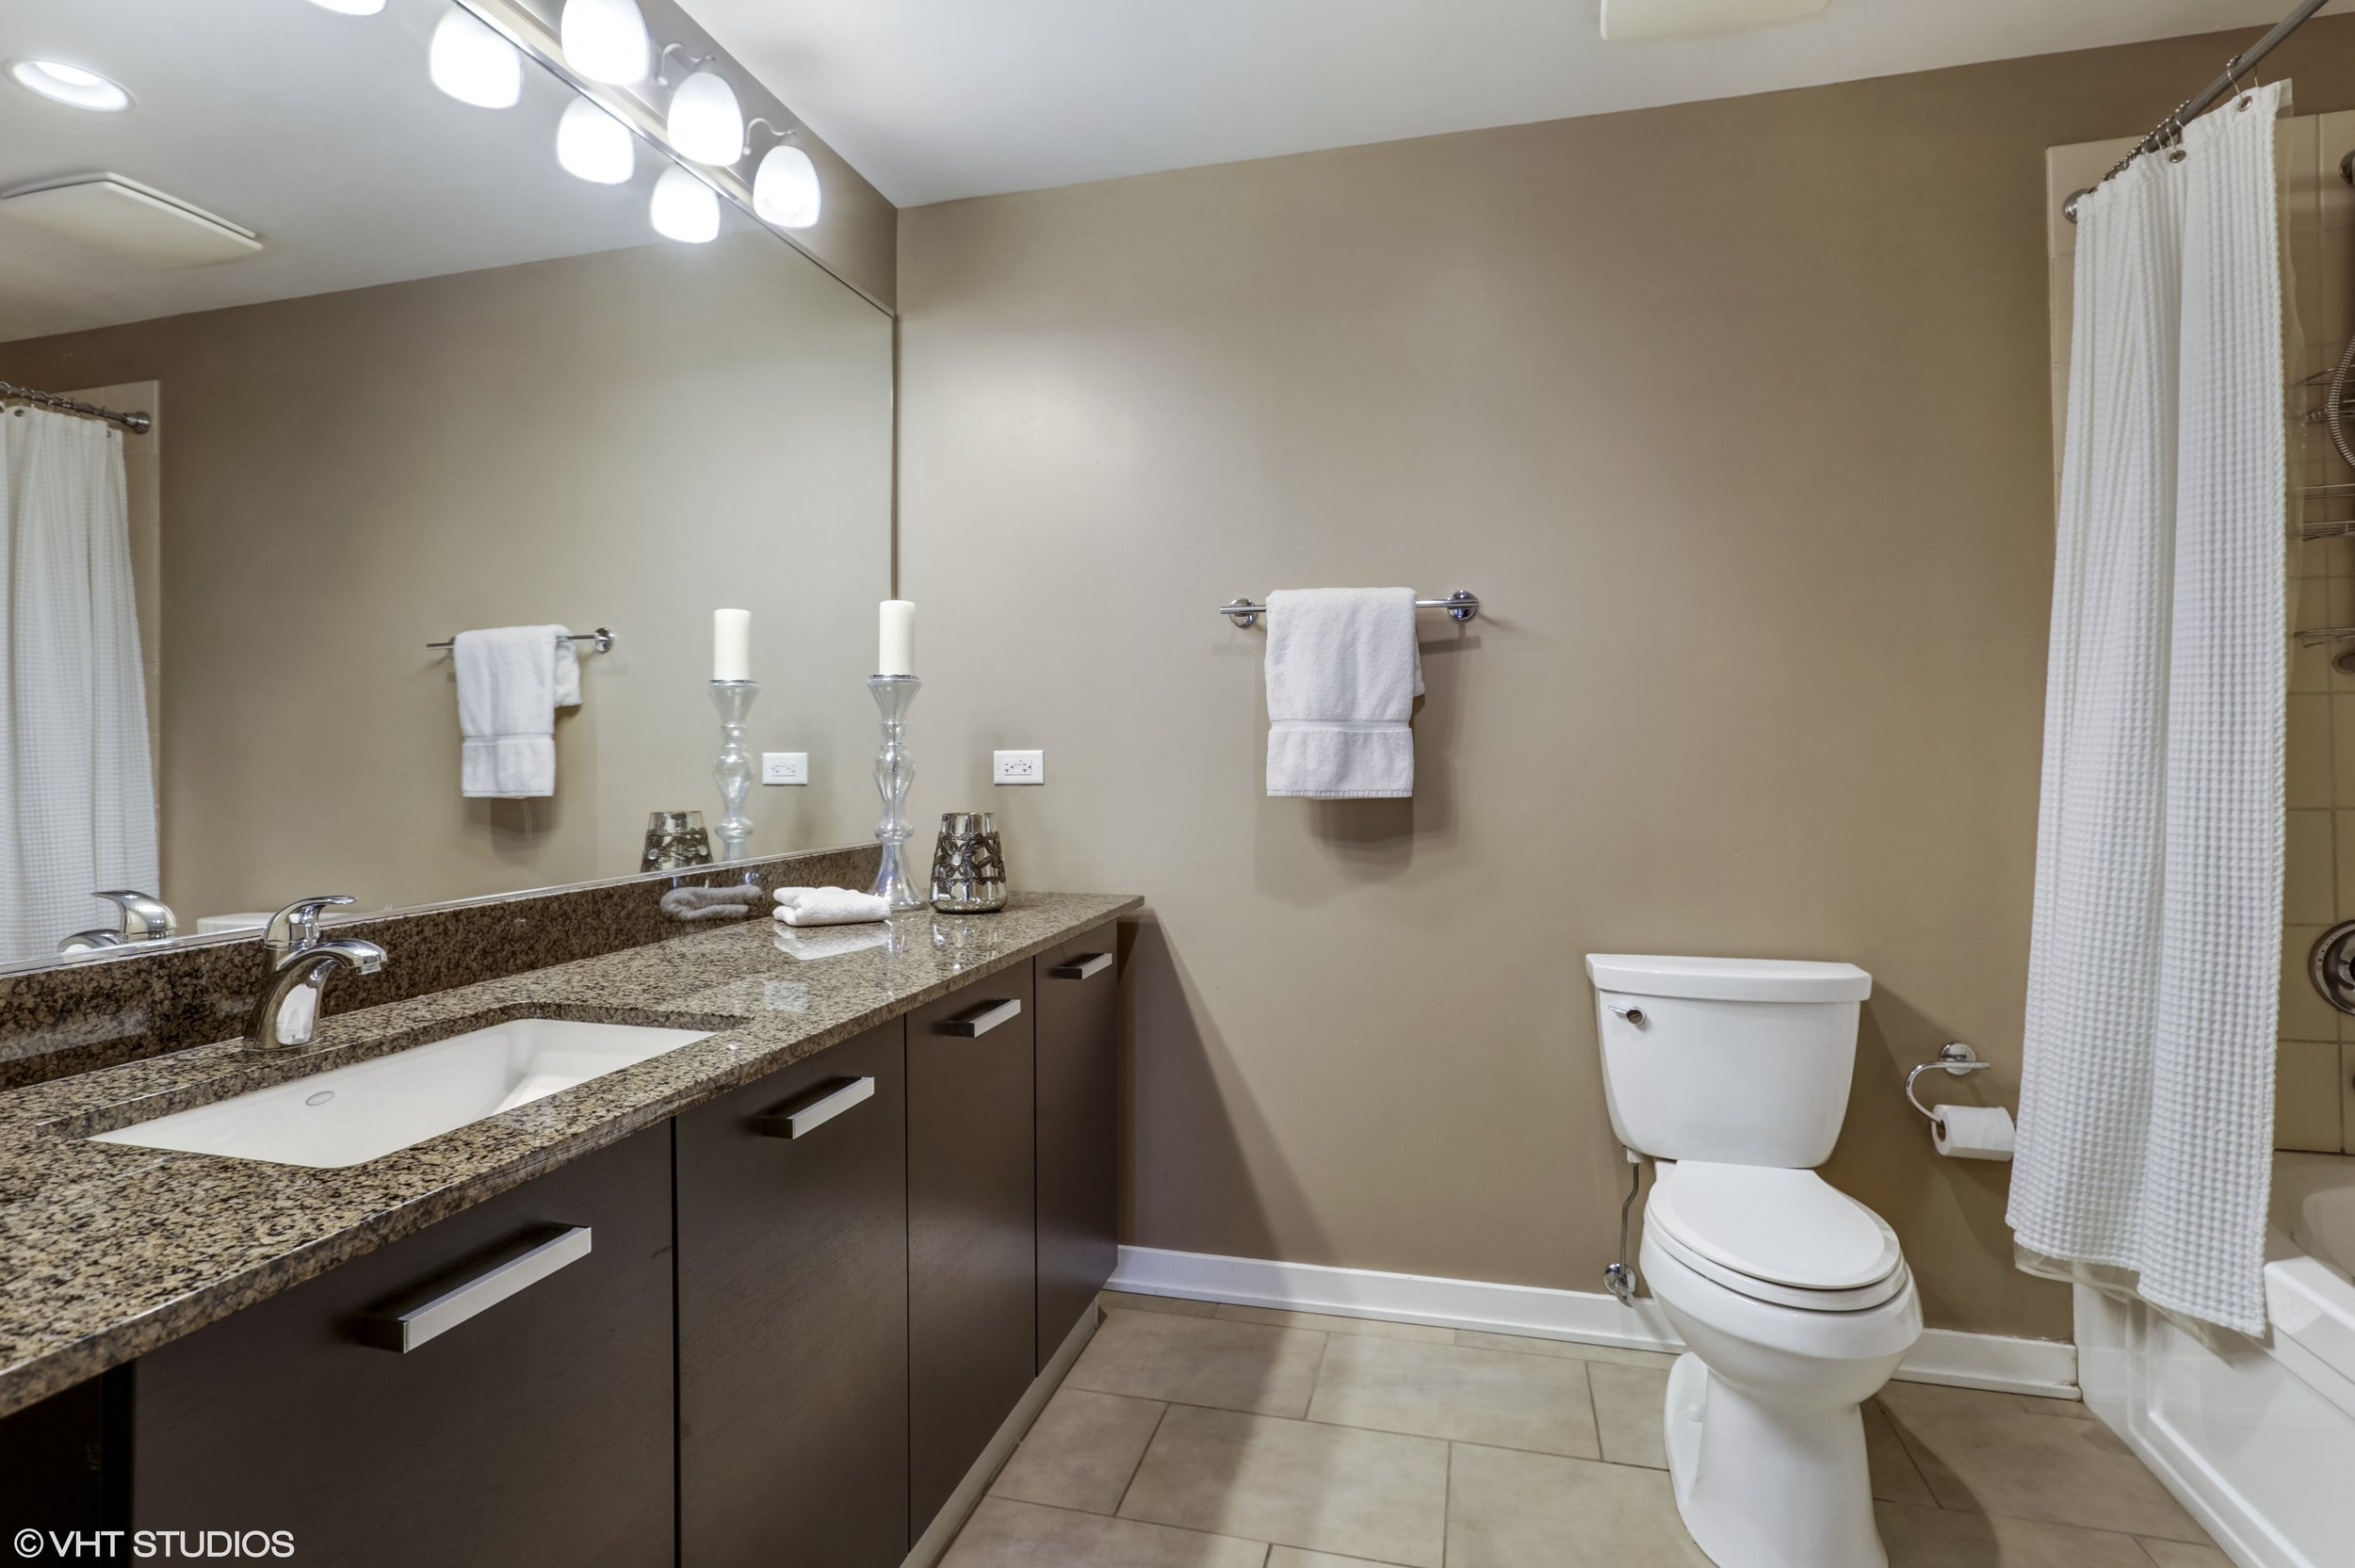 10_5430NorthSheridanRd_308_13_MasterBathroom_HiRes.jpg